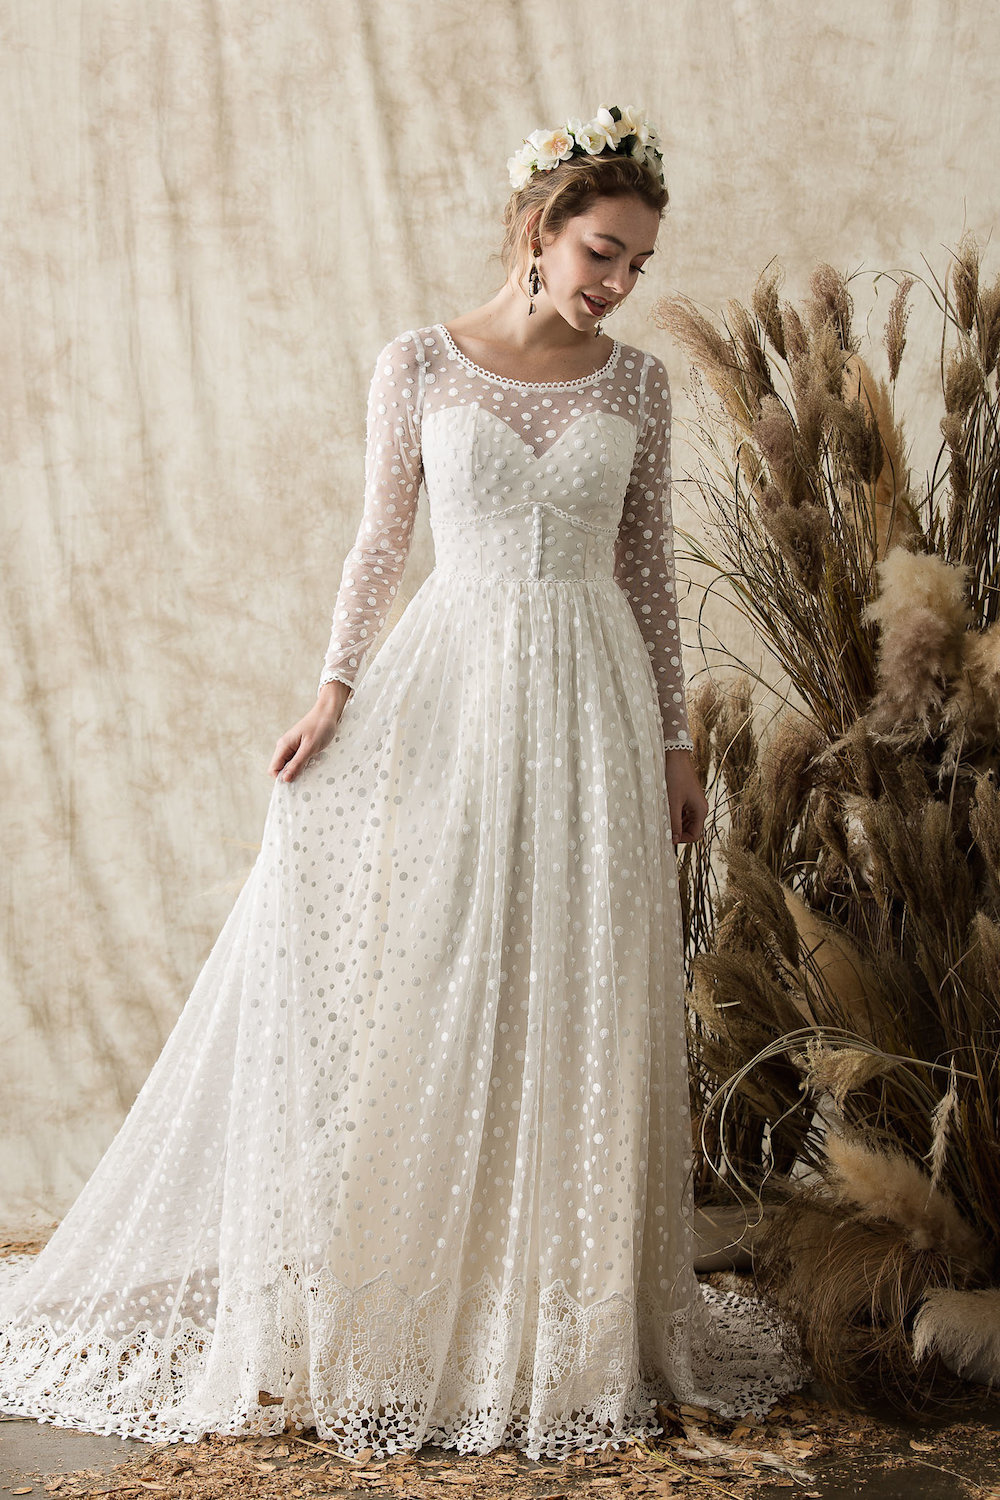 Wedding Dress Shopping: My Dream Dresses | Dreamers & Lovers | Wolf & Stag